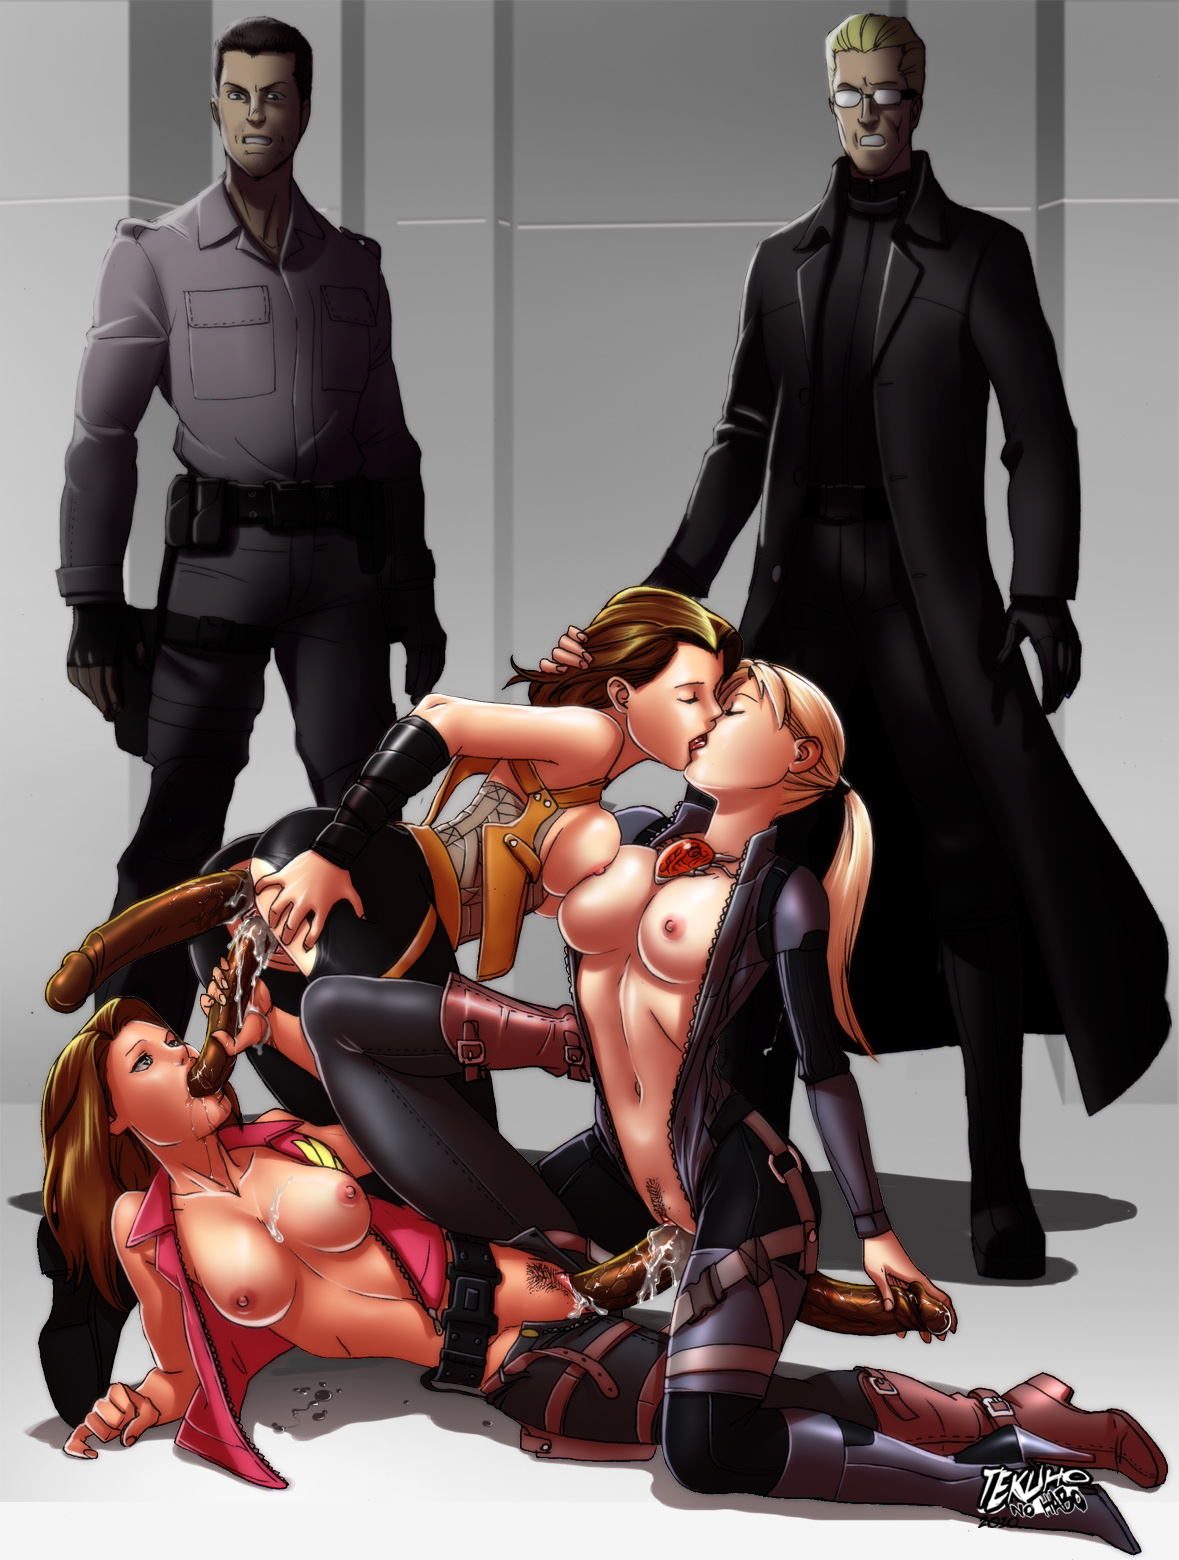 Resident evil porn galleries porno picture